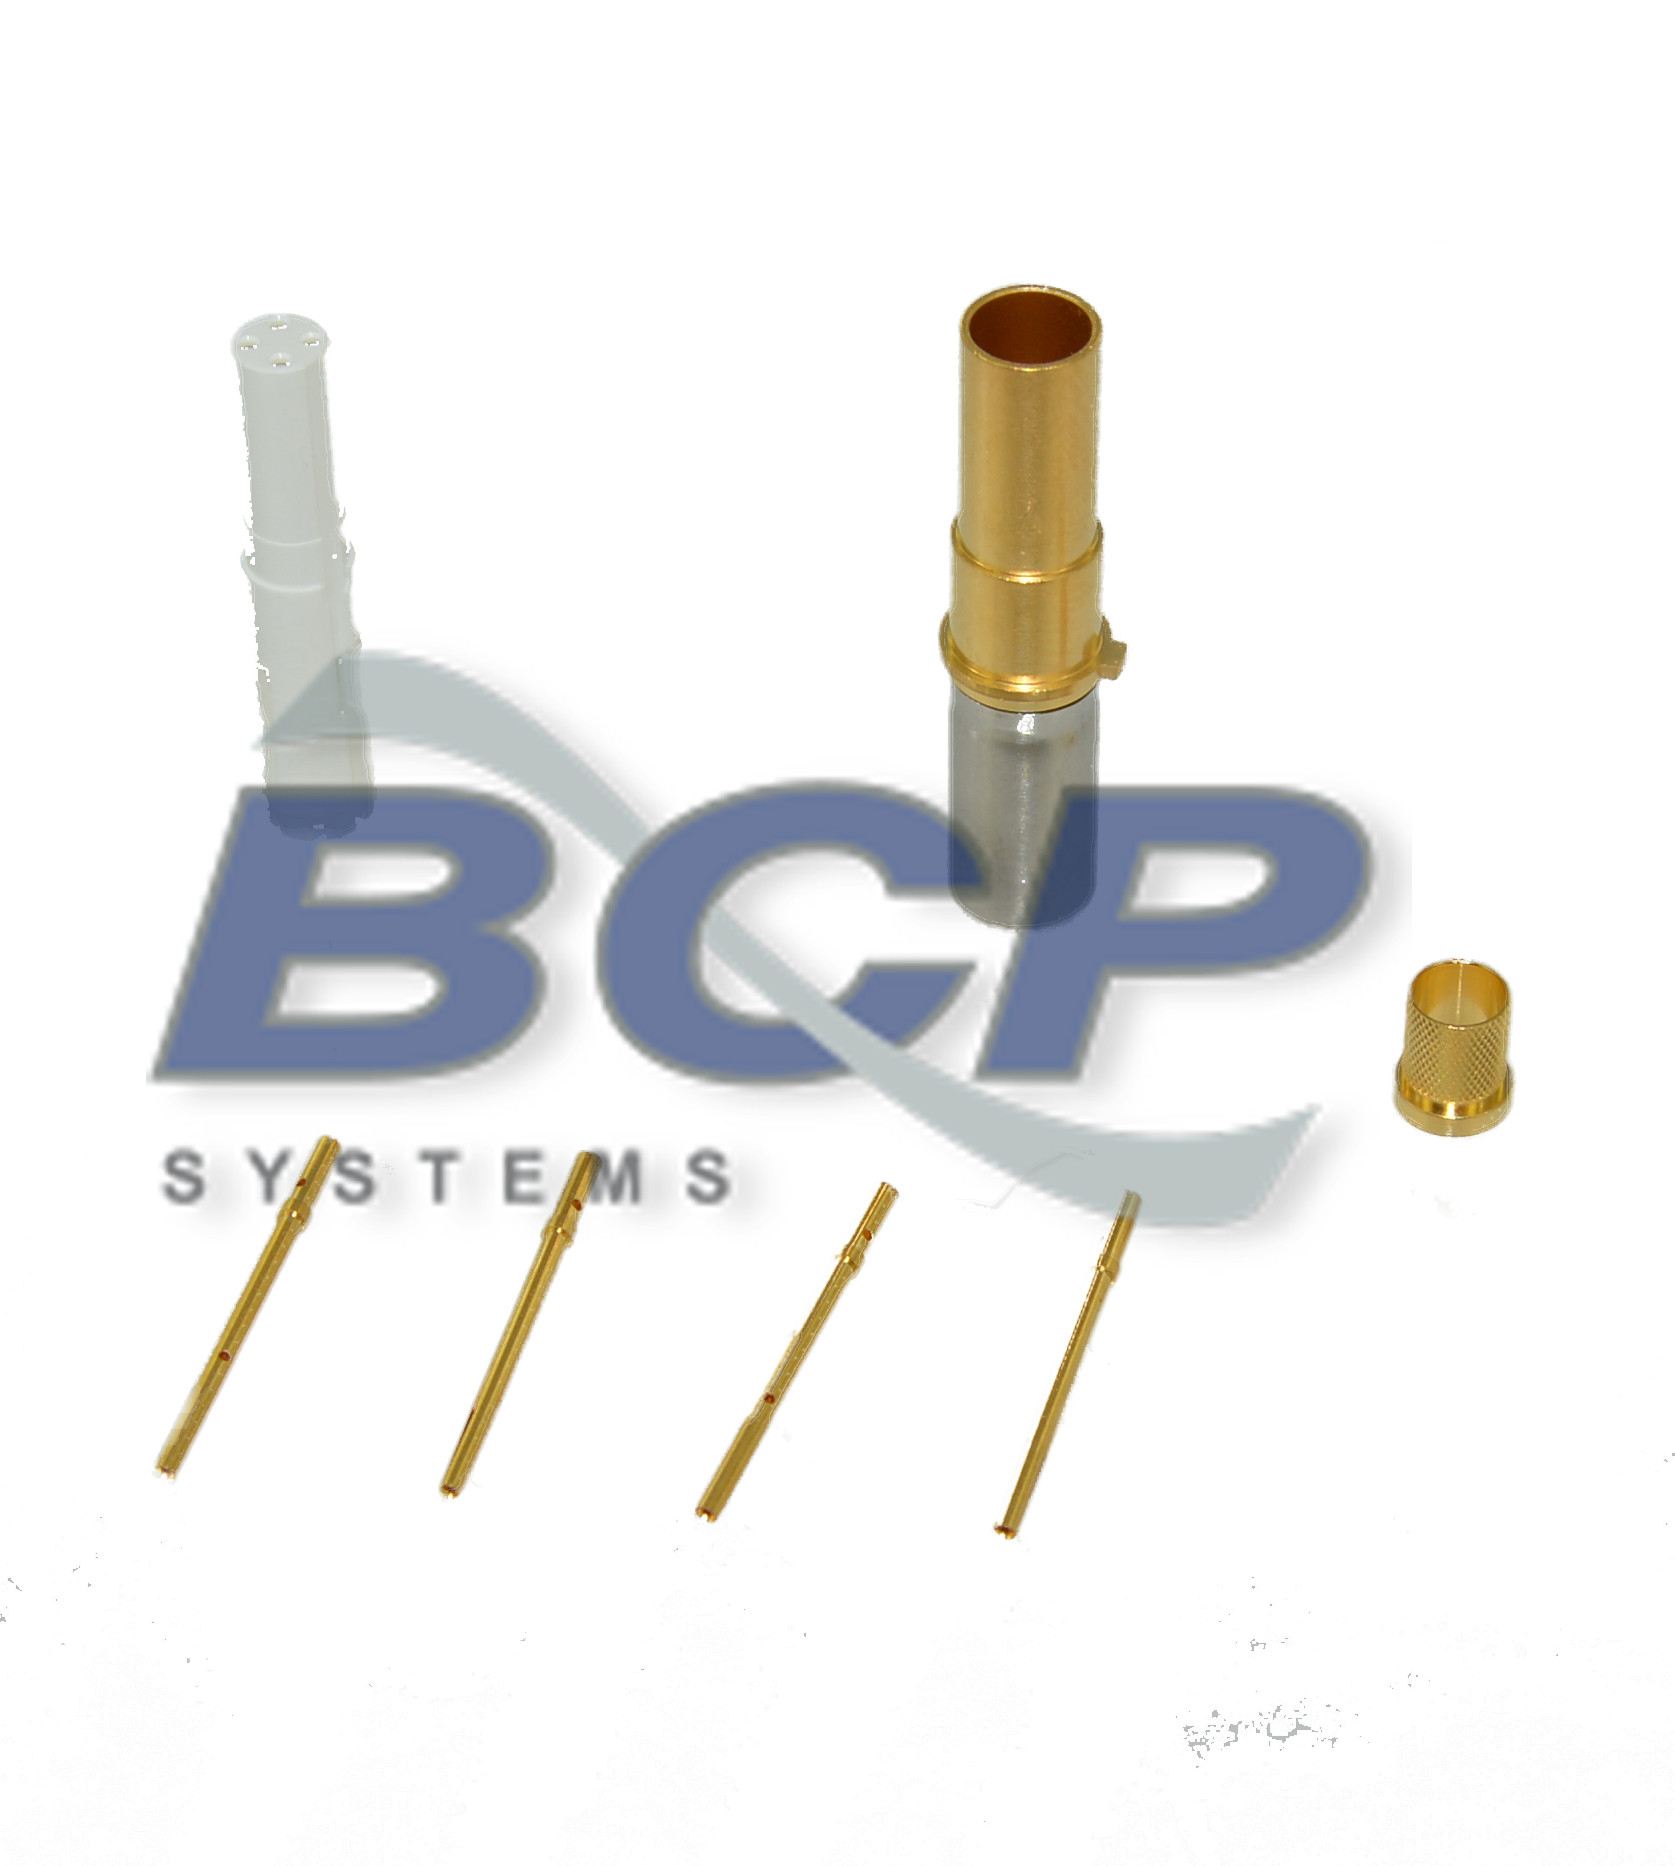 Bcp Systems Specialized Wire Harness Assembly And Repair Services Seal For The Aerospace Medical Oil Industries